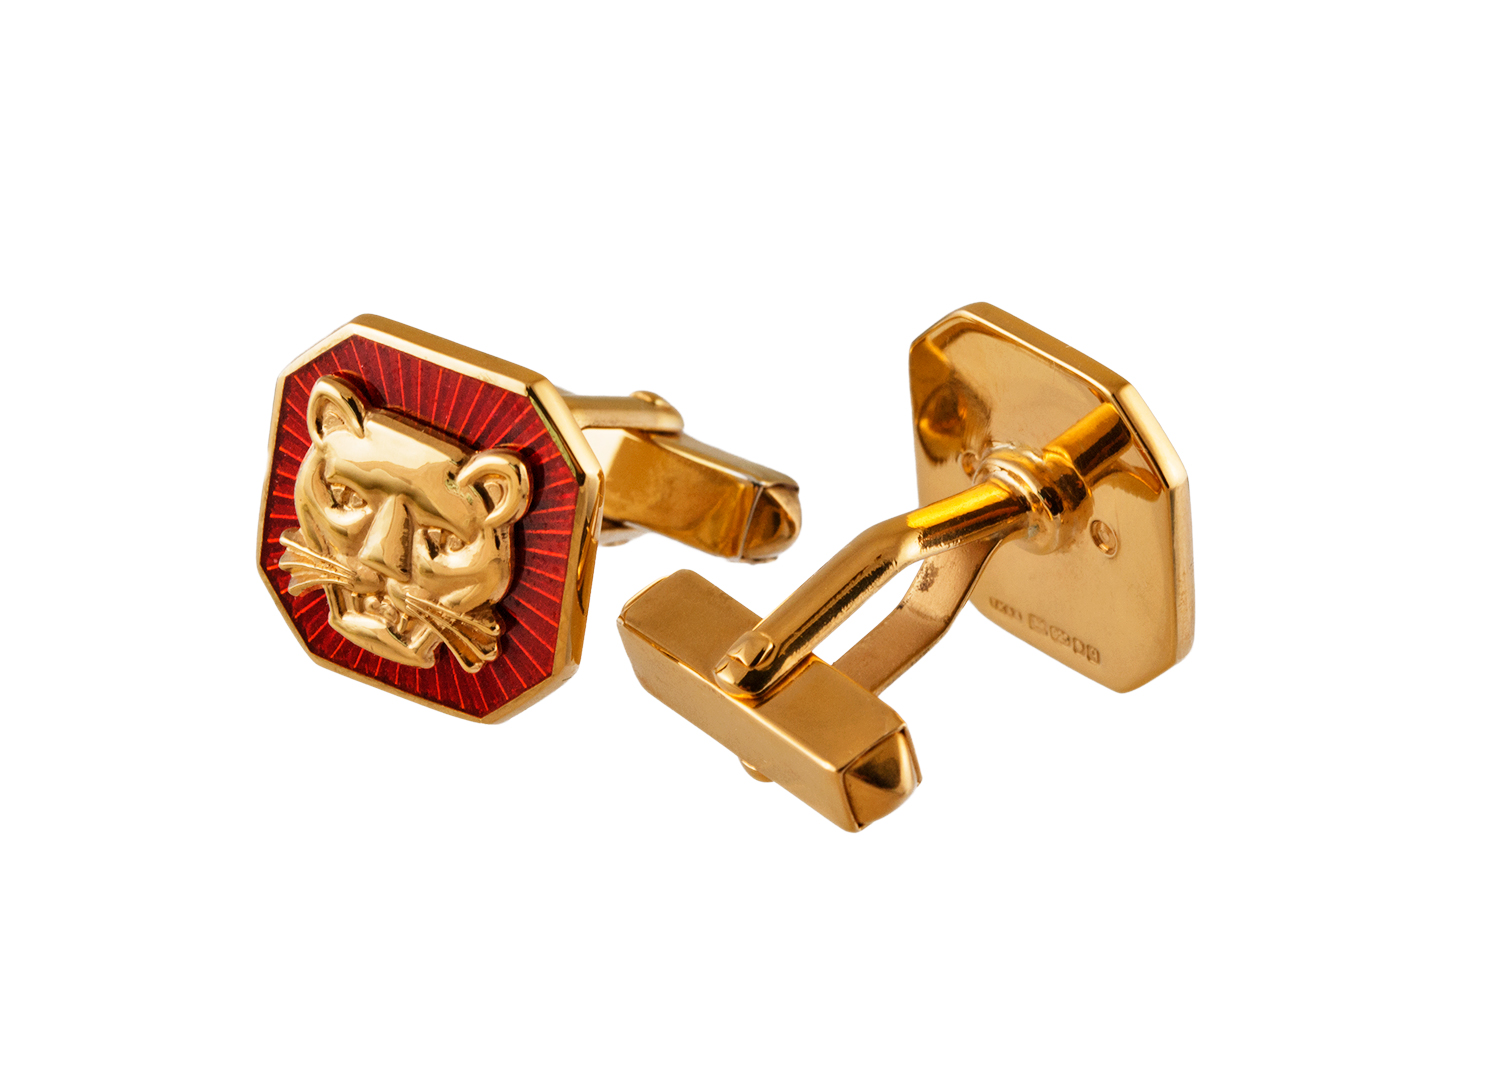 TOYECC - Goldsmiths Gold-Plated Silver Vitreous Enamel Cufflinks | T-Bar